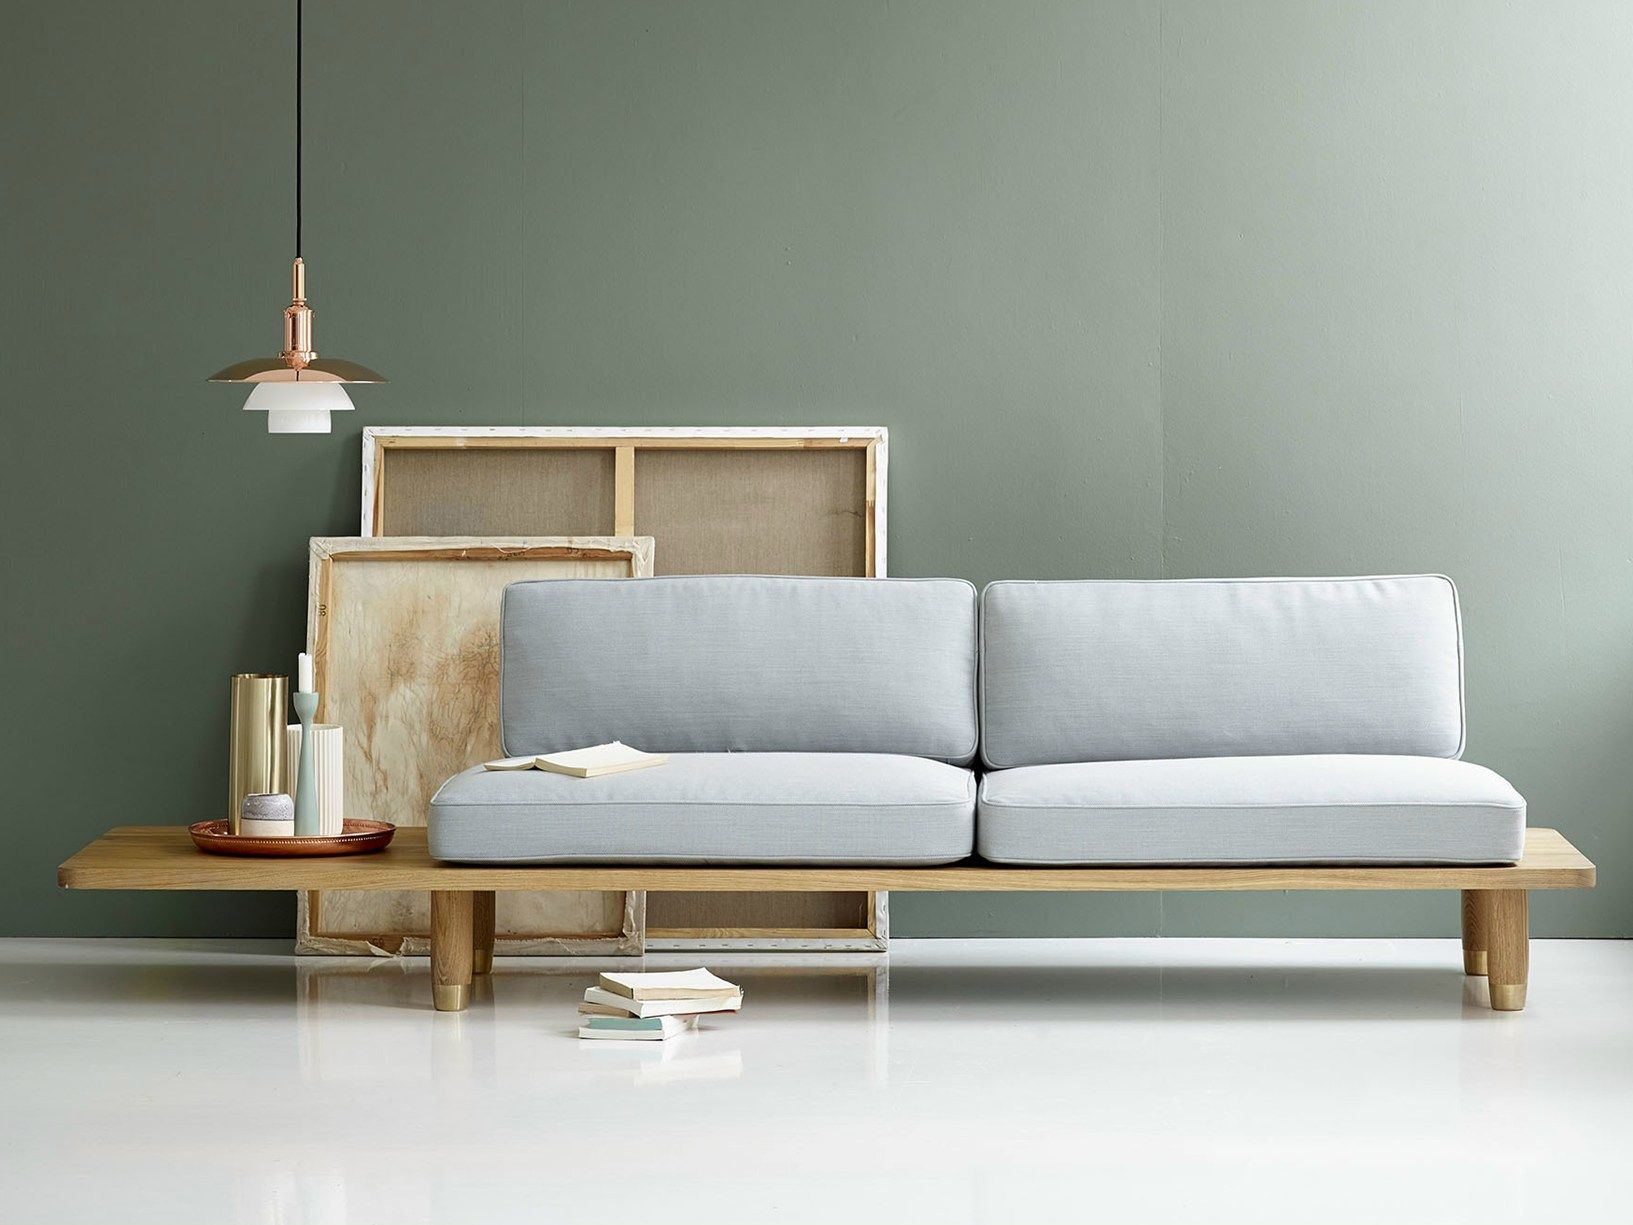 Scandinavian style international elegance plank sofa by dk3 for Scandinavian furniture